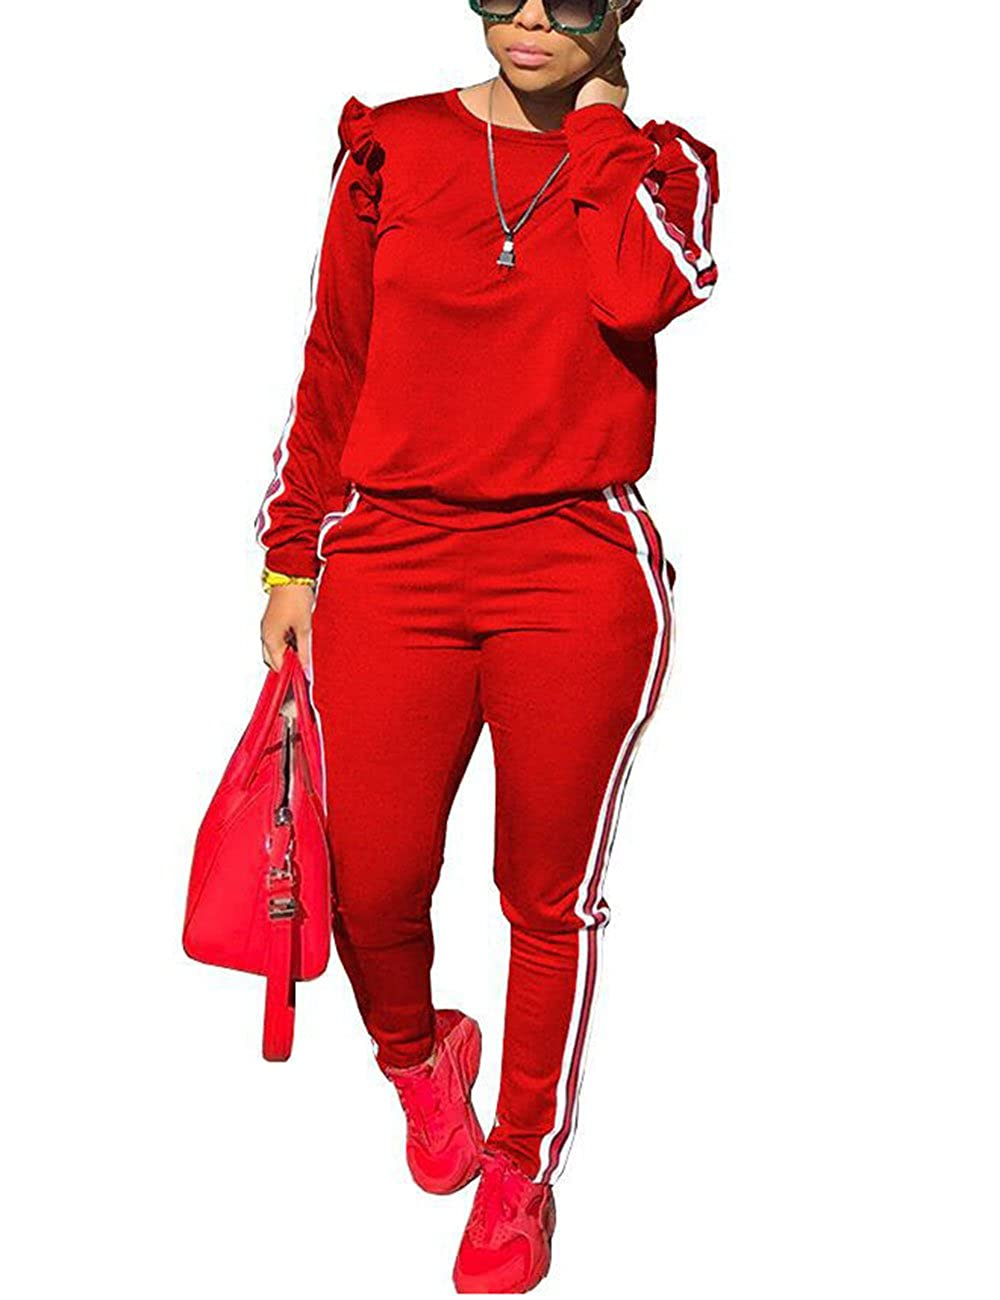 Akmipoem Women's 2 Piece Outfits Ruffle Sleeve Sweatshirt and Pants Sweatsuits Set Tracksuits